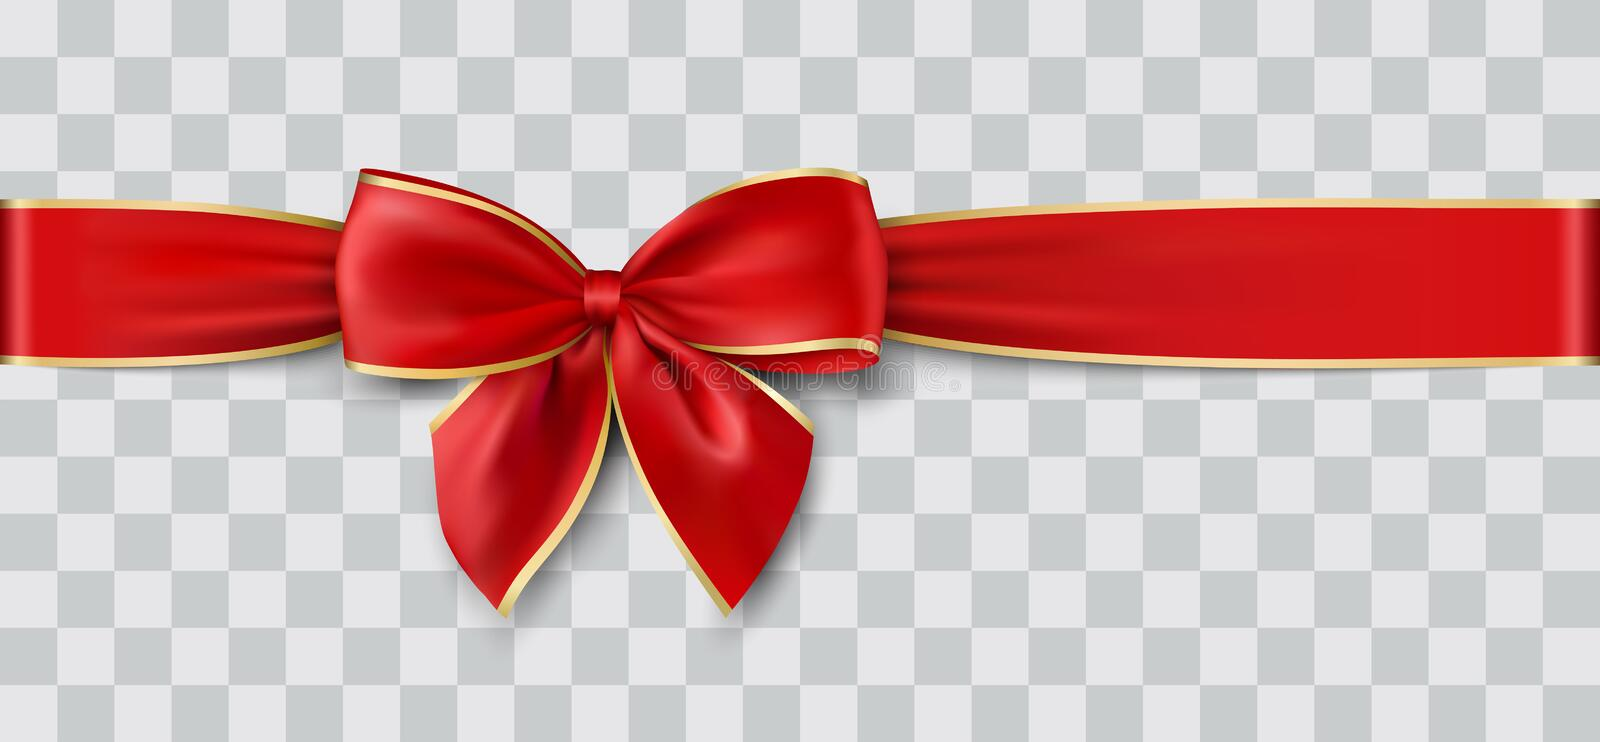 Red ribbon and bow with gold, vector illustration. Red ribbon and bow with gold for Christmas, vector illustration royalty free illustration